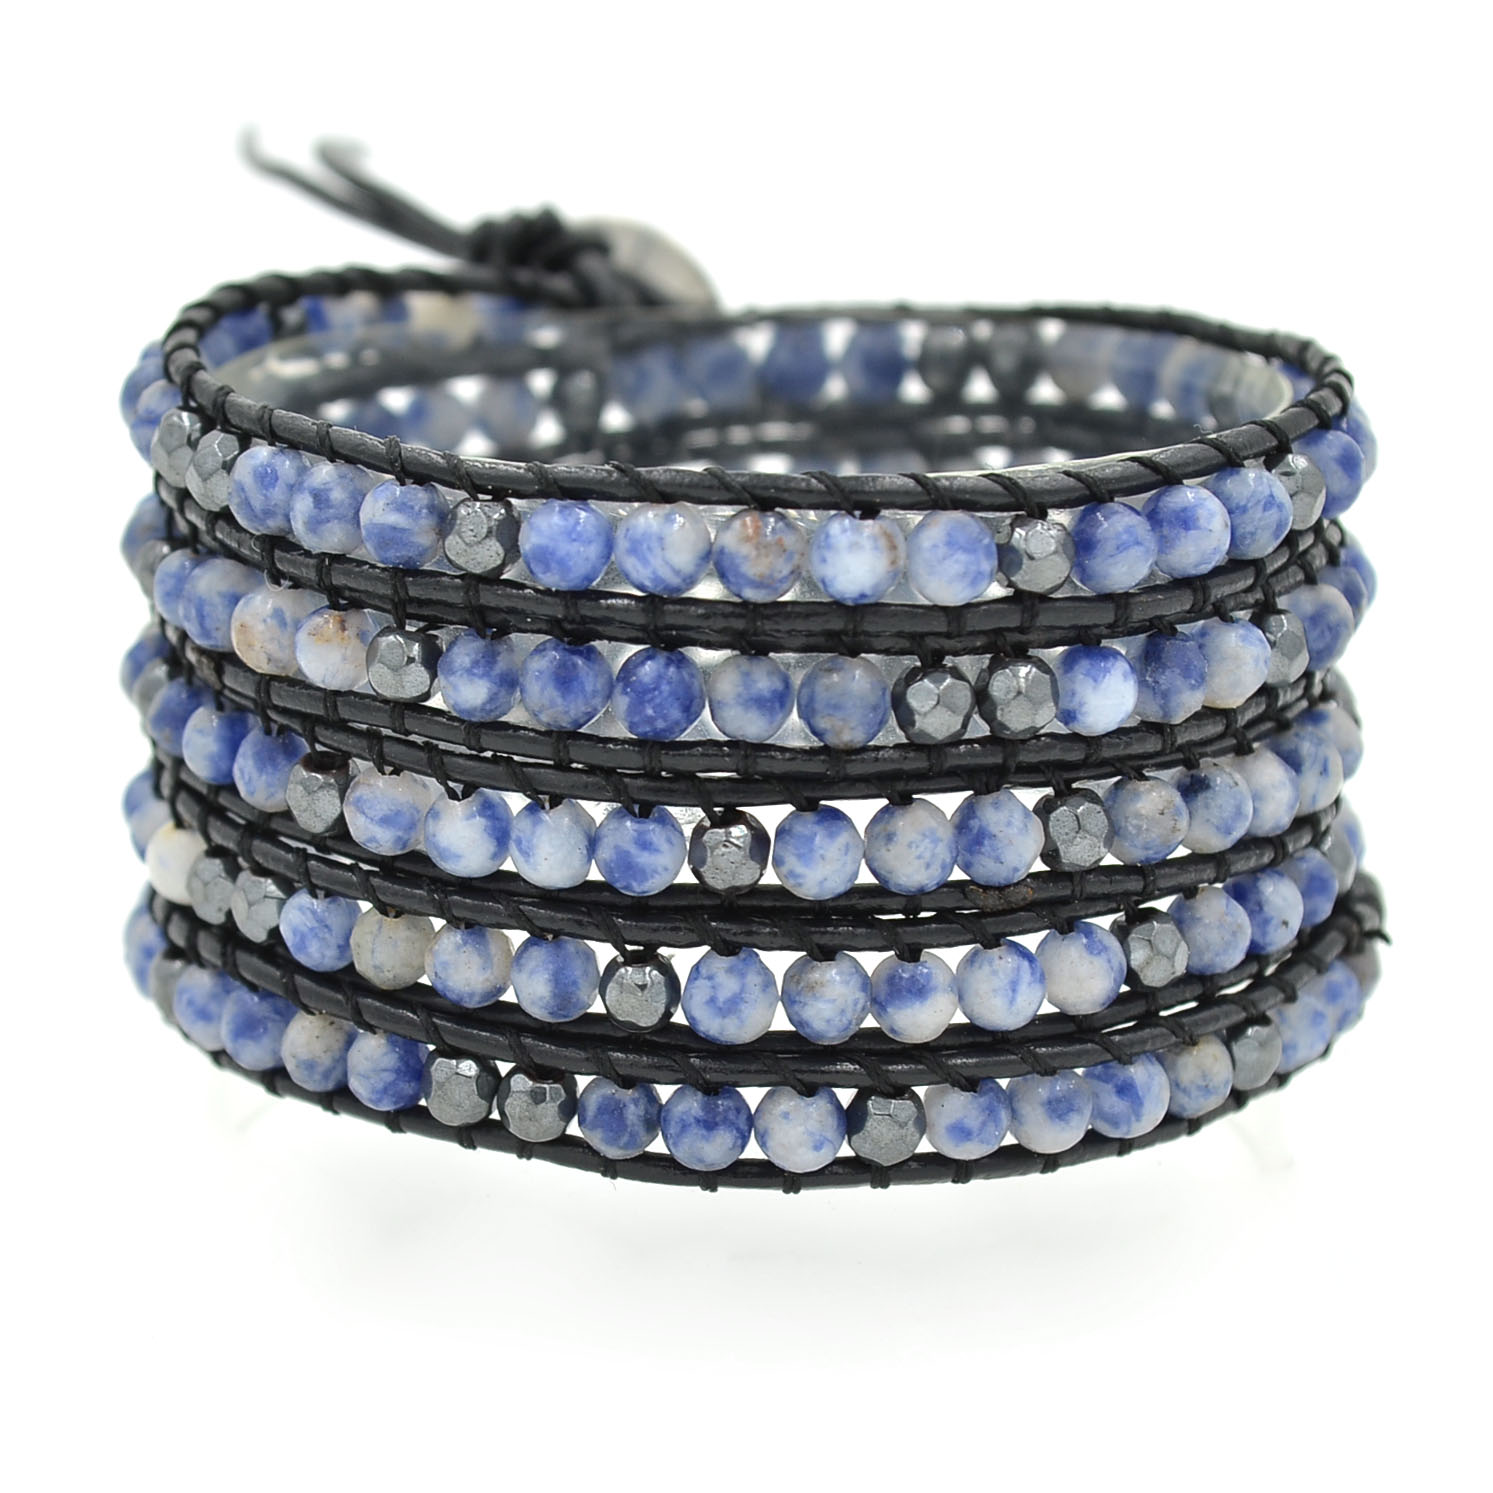 Lin Suu Jewelry Black Leather Wrap Bracelet Blue and Multicolor